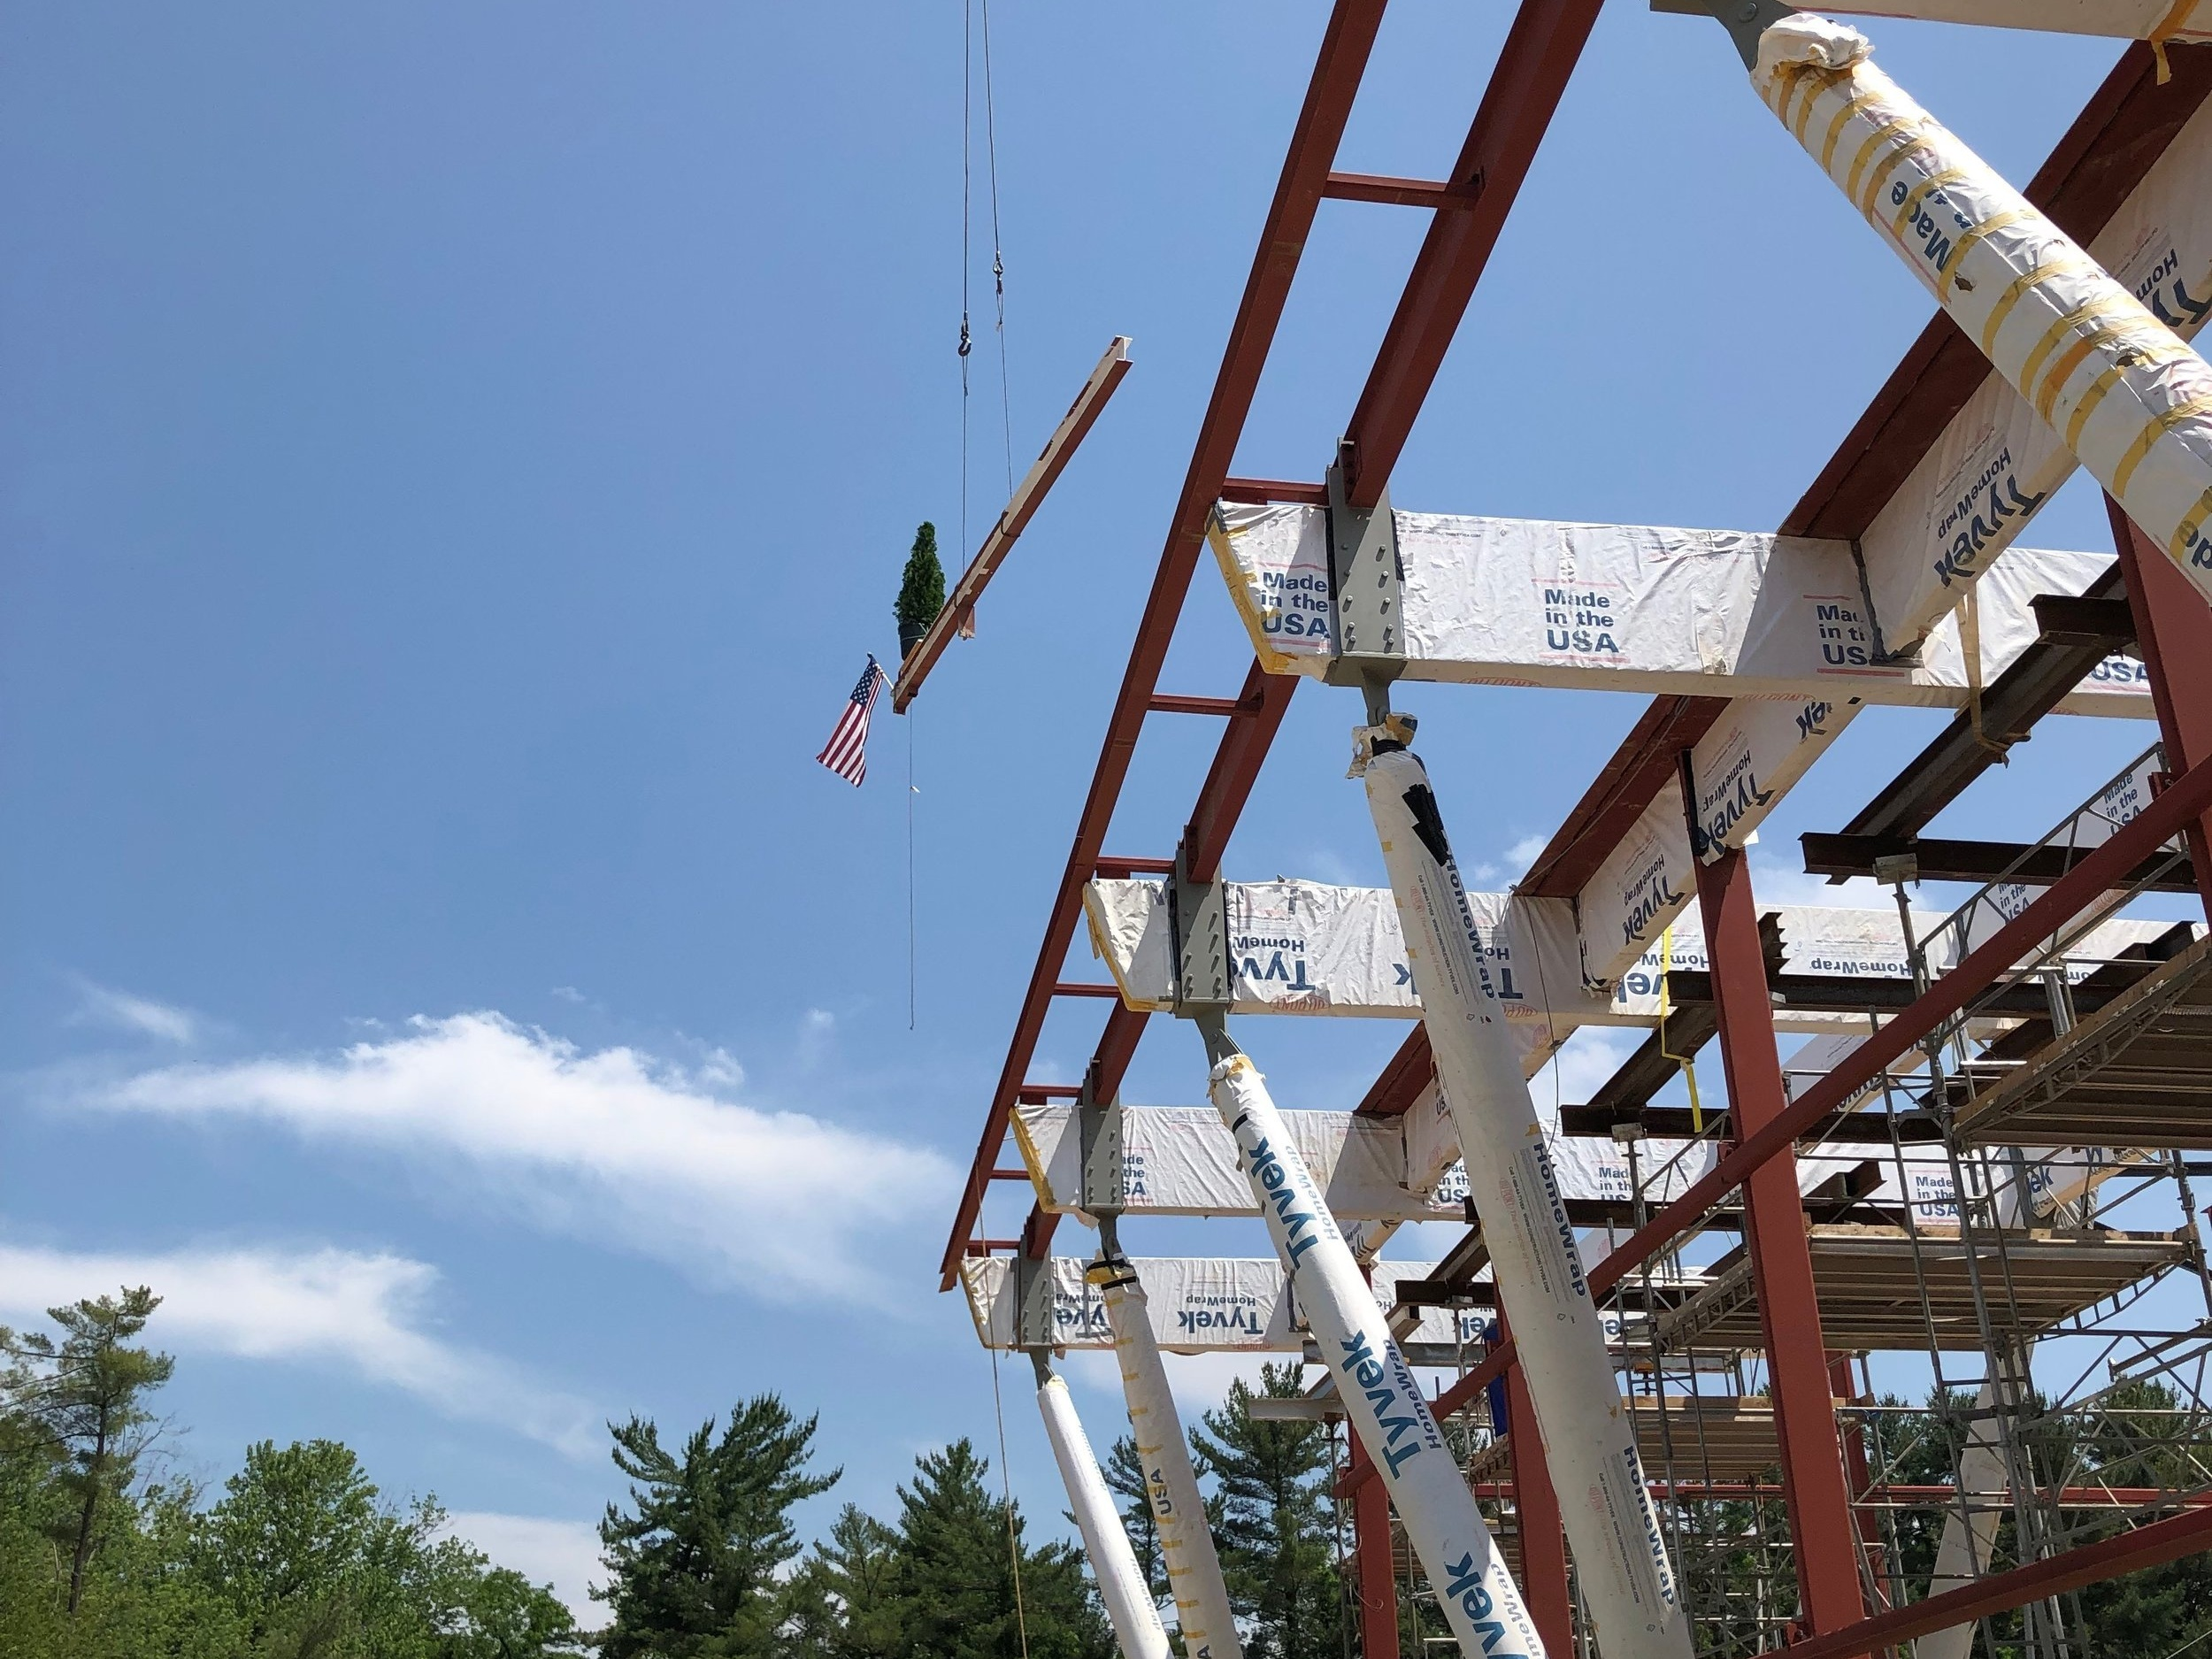 Our project team looked up as the last steel beam was placed upon the structure, the marking of a milestone. - Over 225 tons of steel were used for the new Center for Athletics and Community and we have worked over 25,764 hours to date.